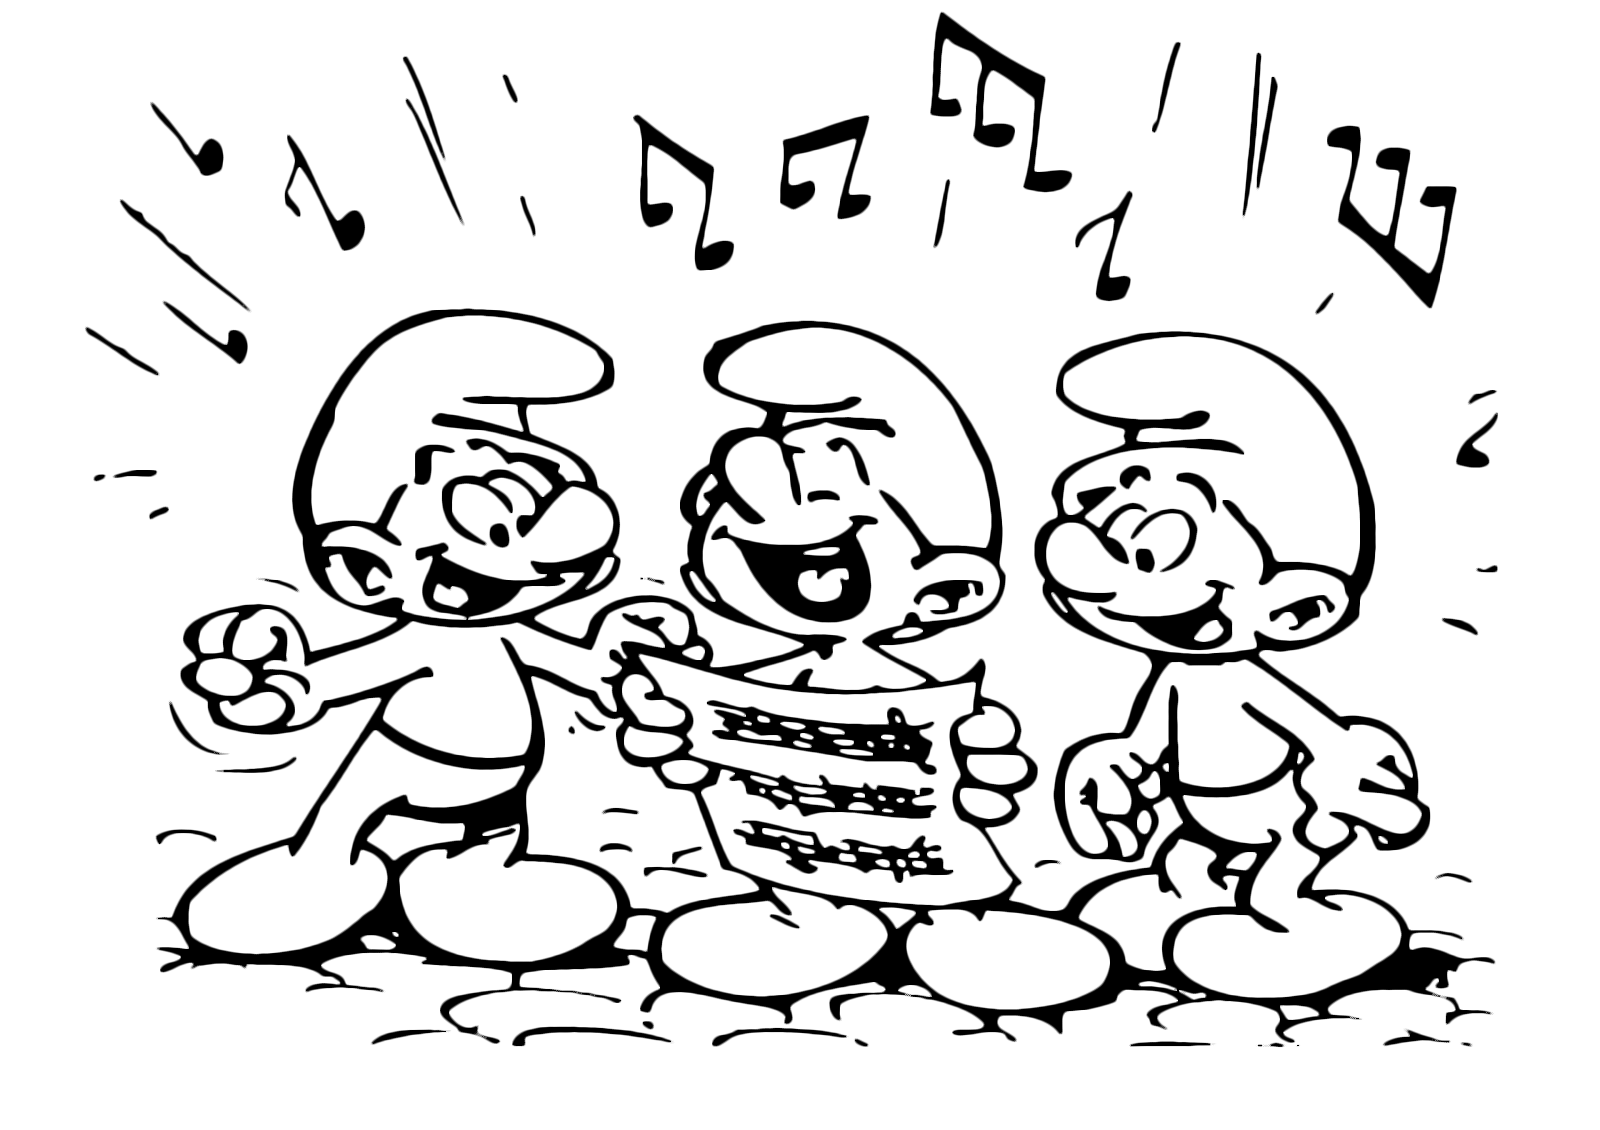 The Smurfs - The Smurfs sing in chorus